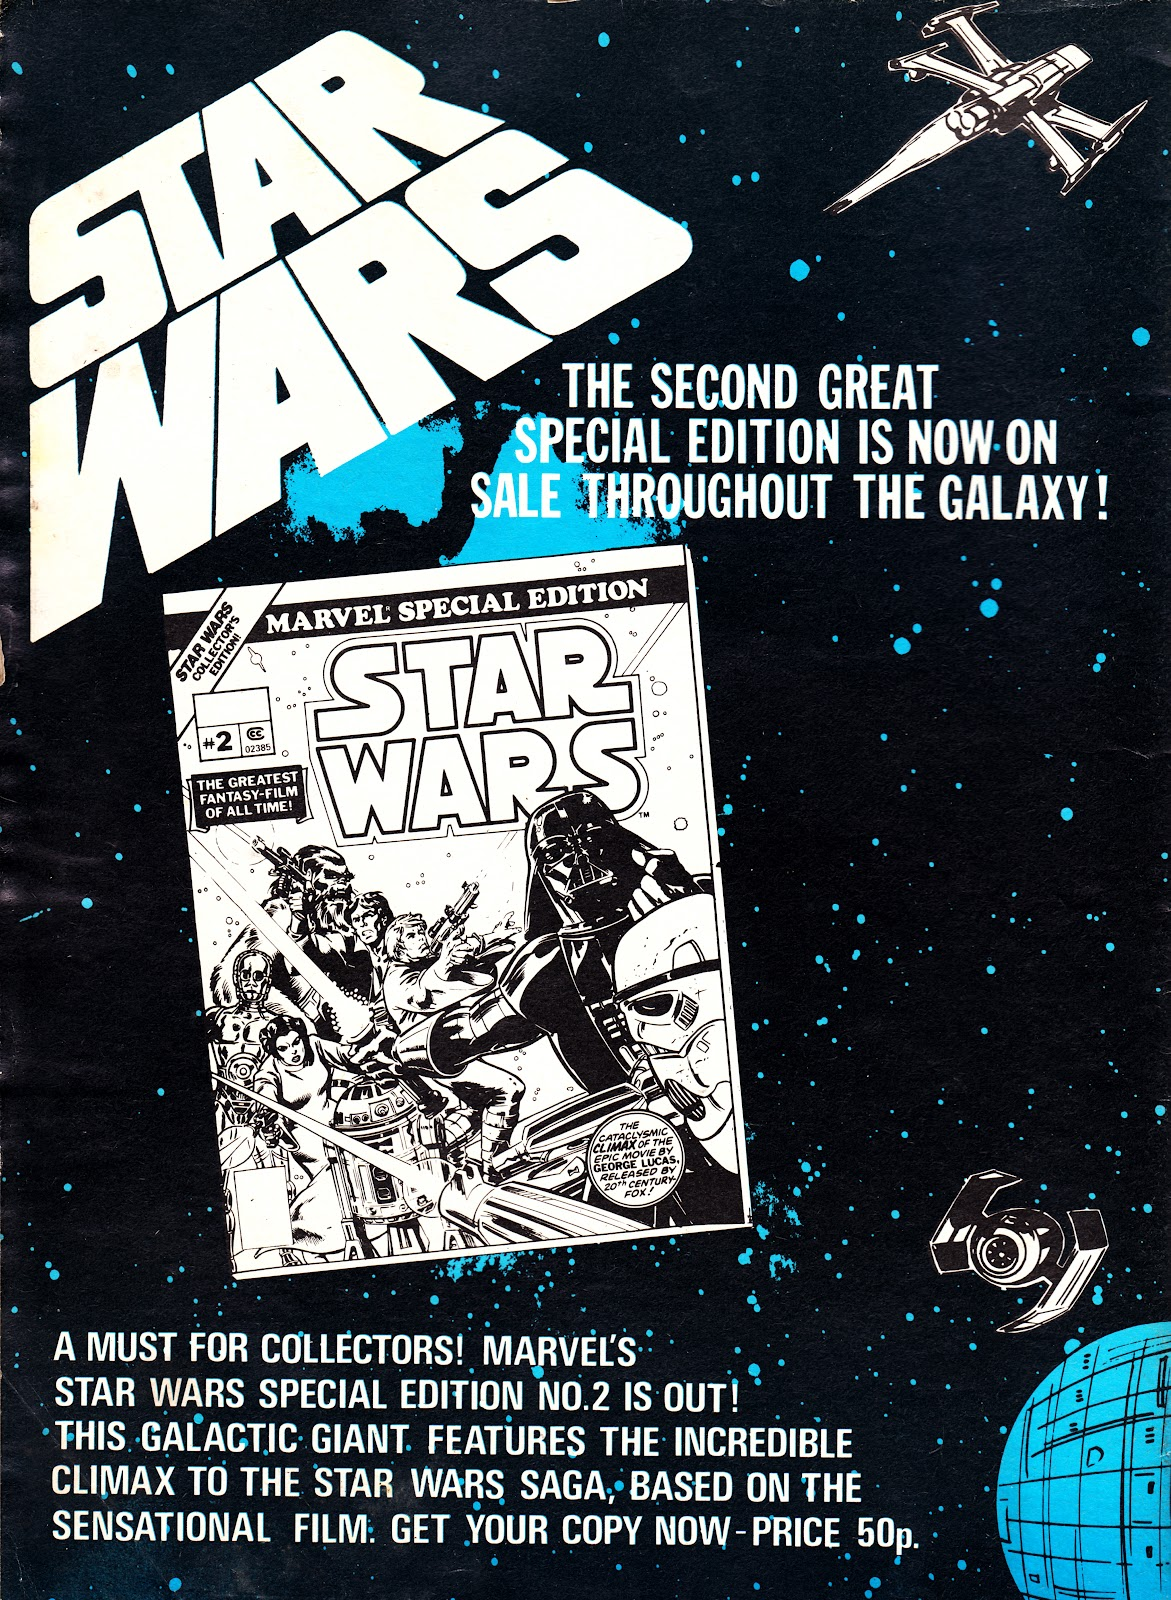 an ad for marvels star wars 2 - Starwars Christmas